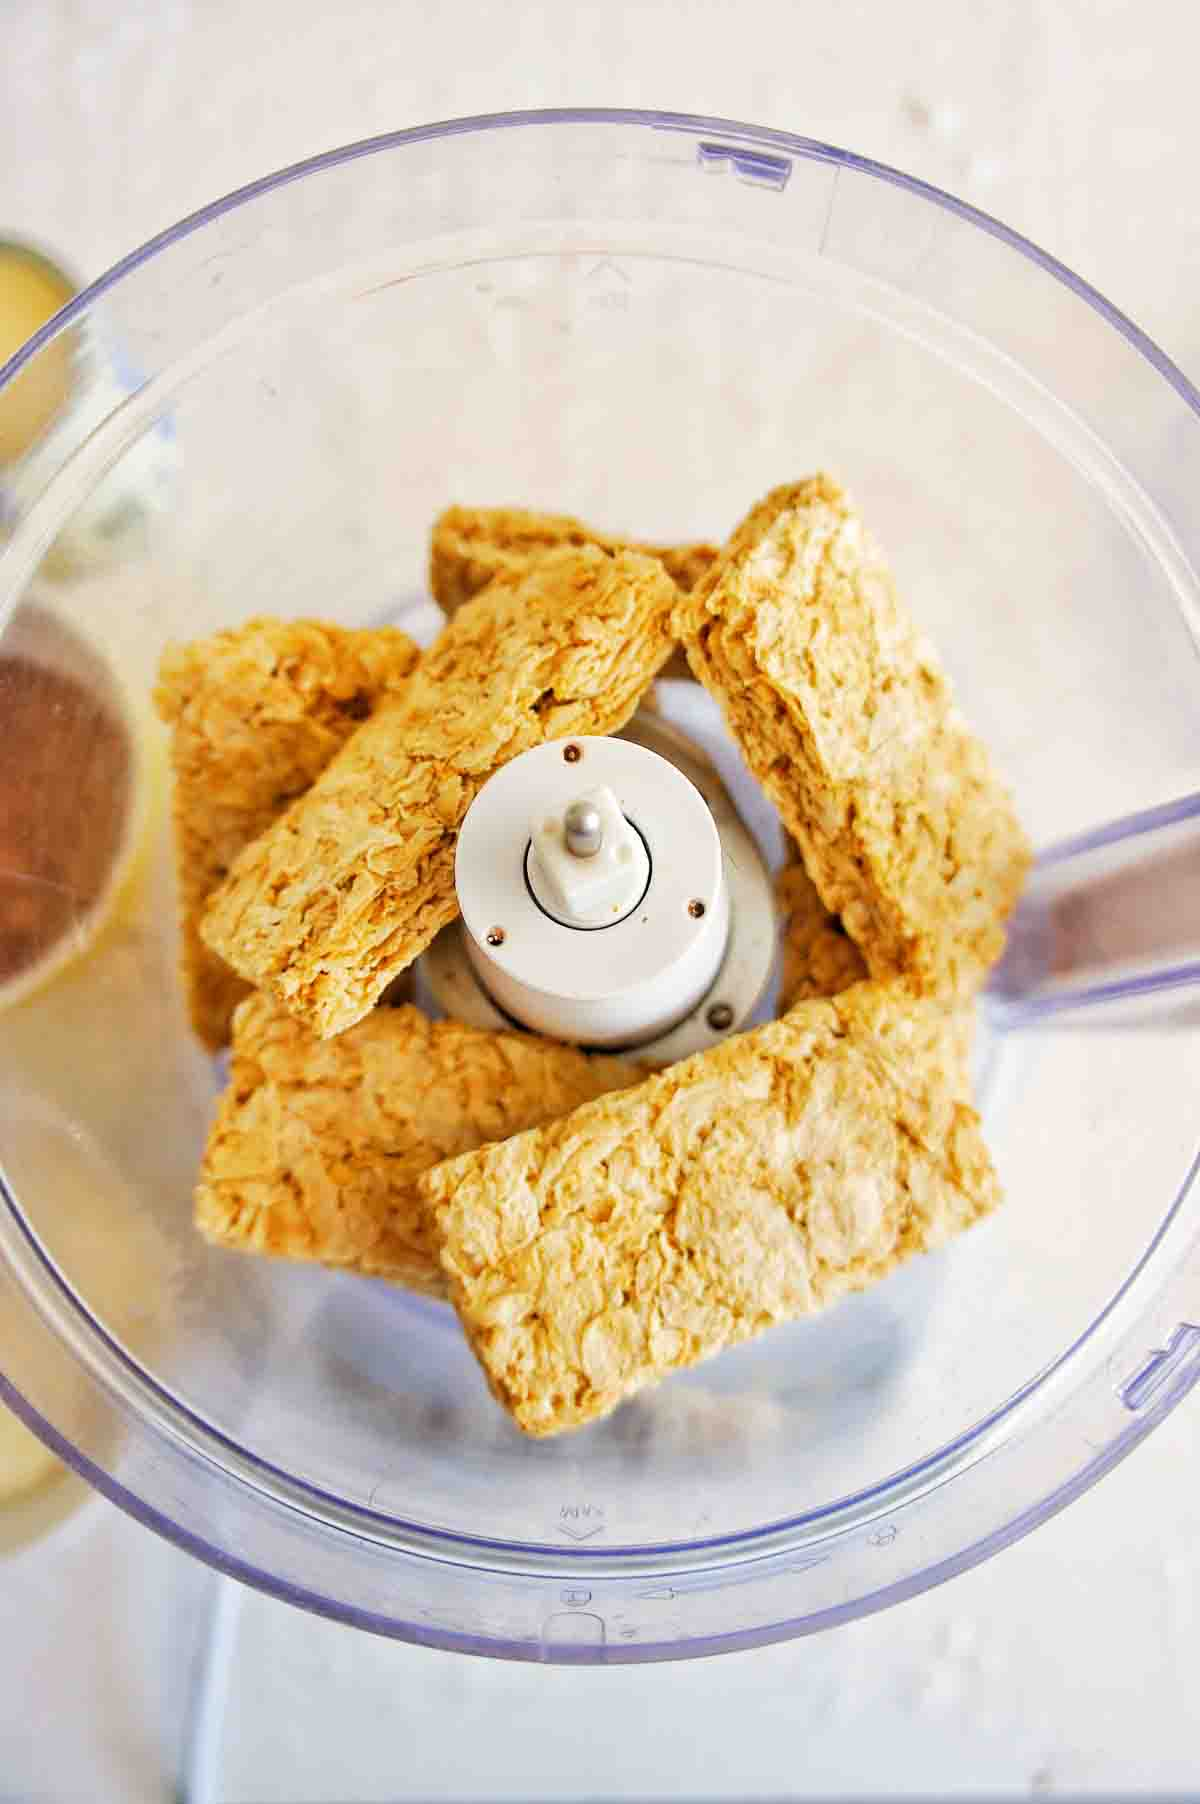 Weet Bix in a food processor